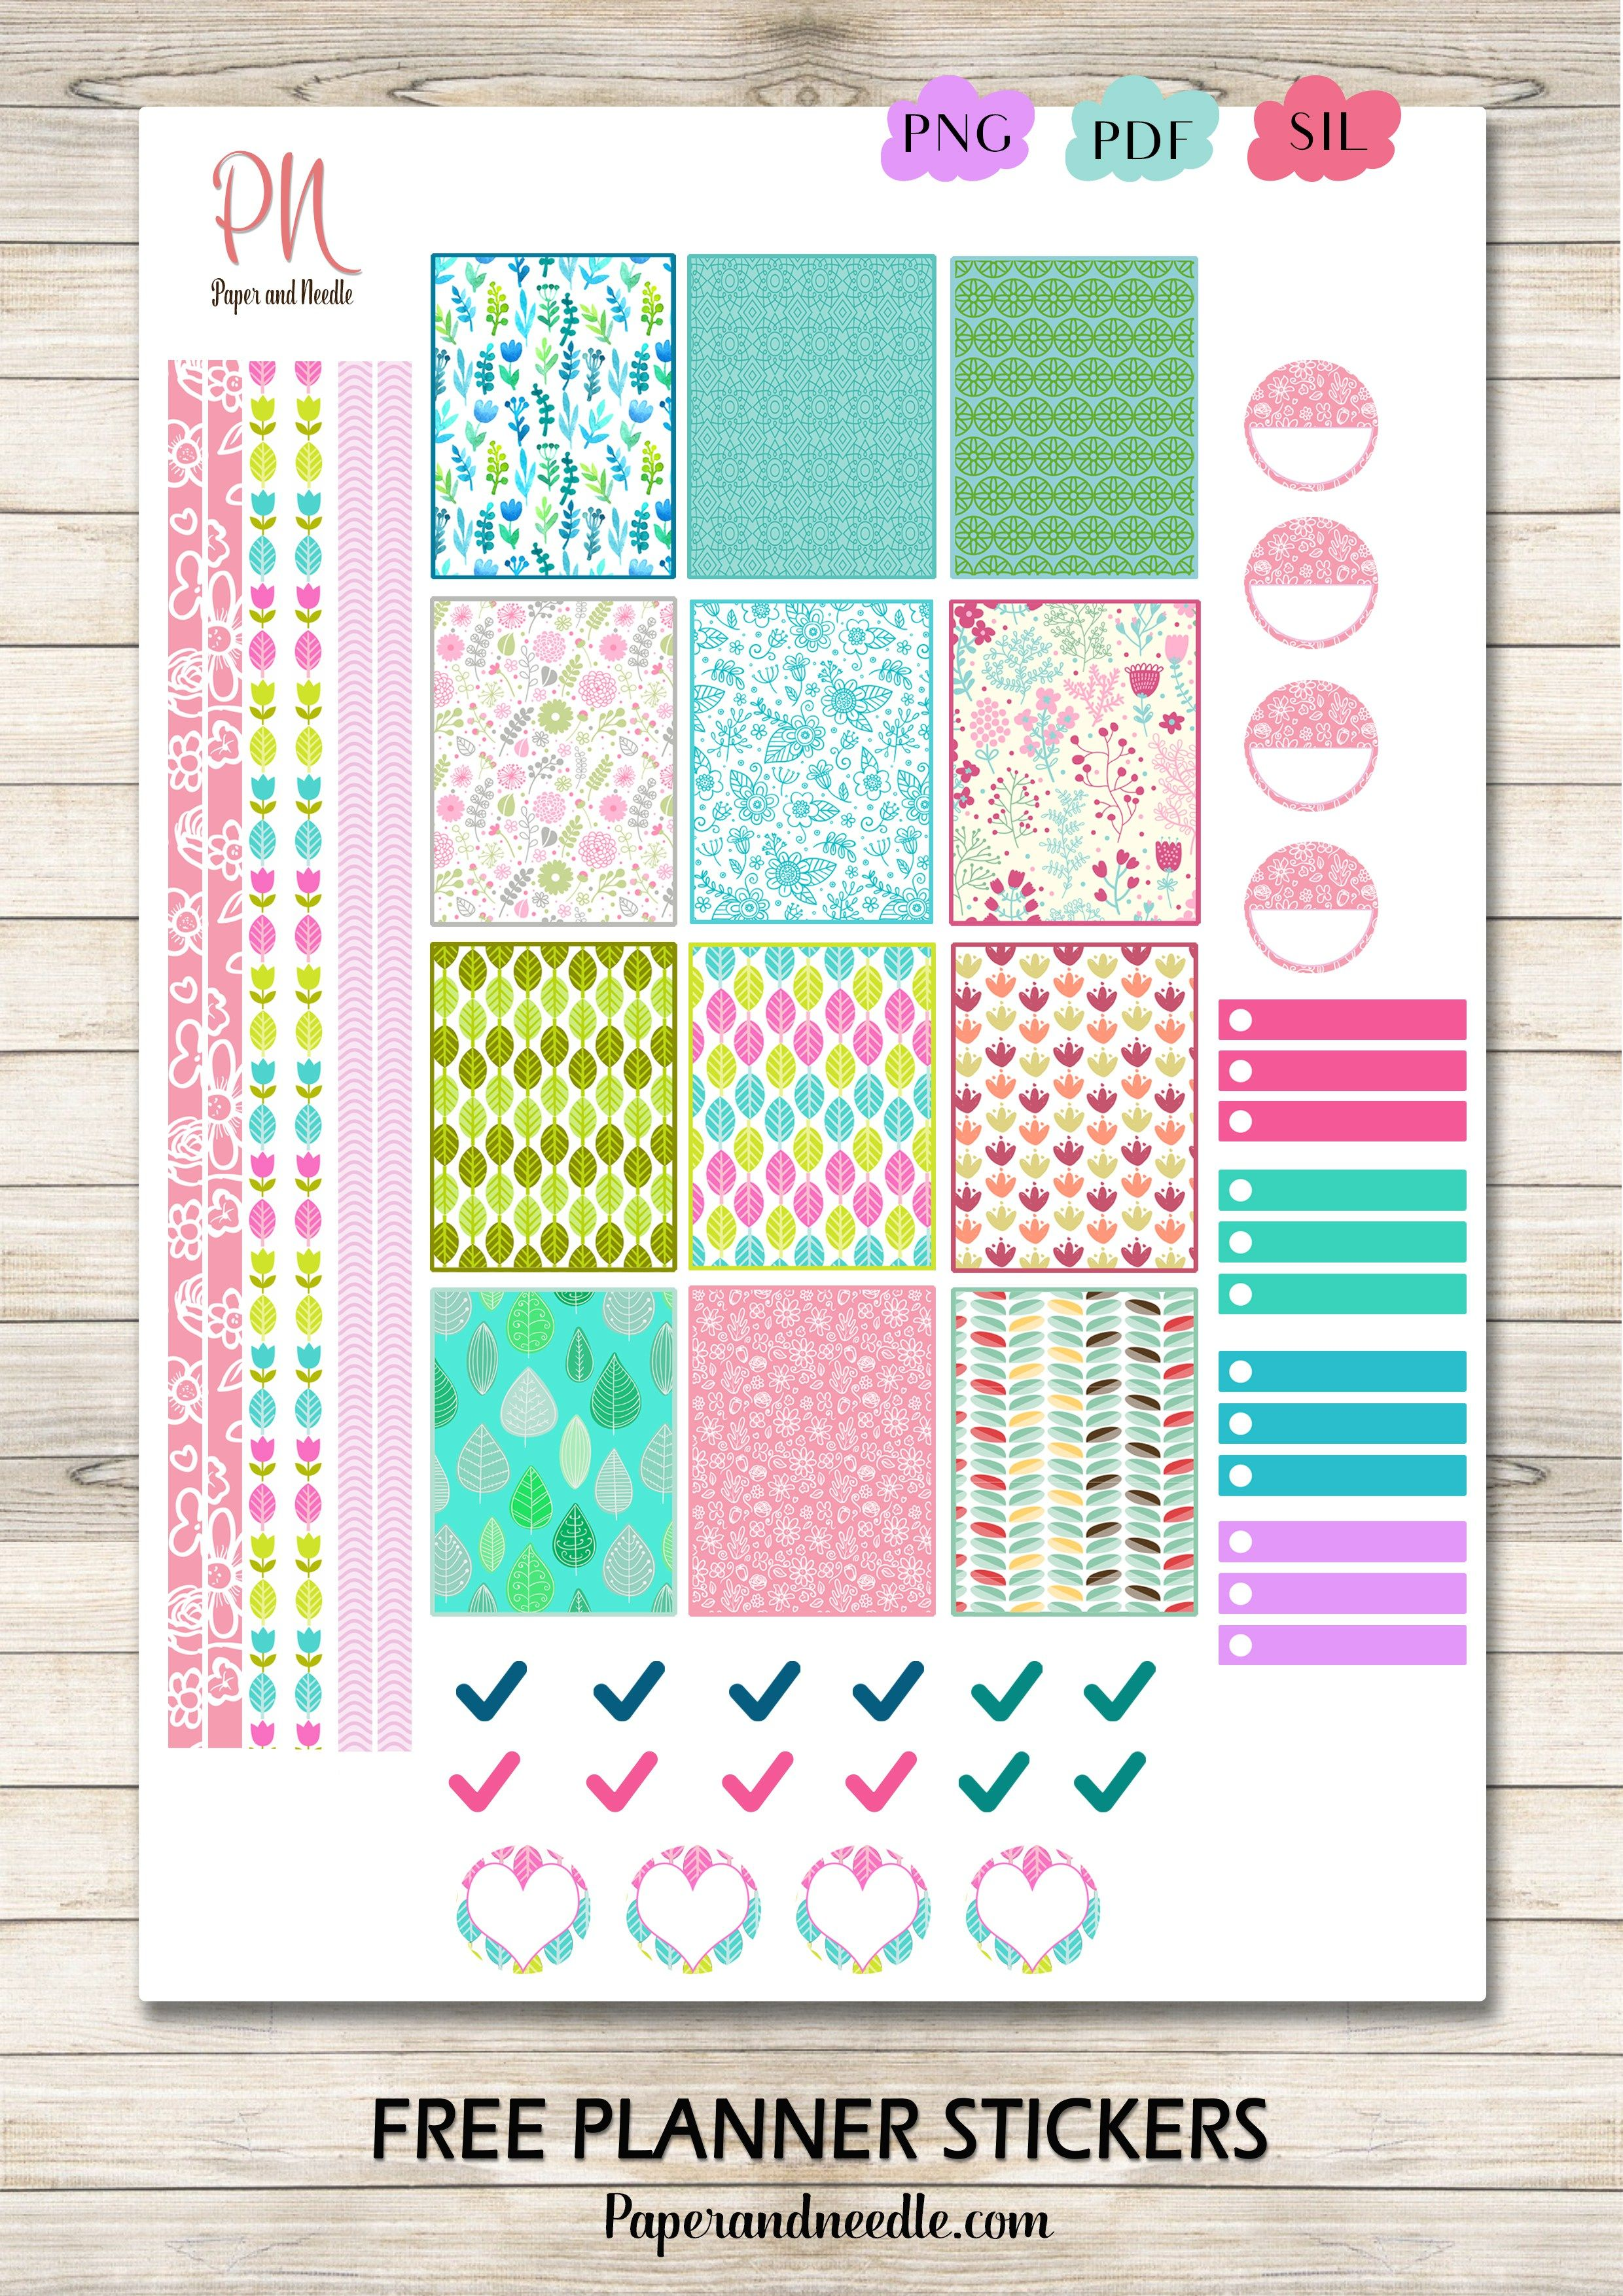 Free Printable Planner Stickers from Paper and Needle